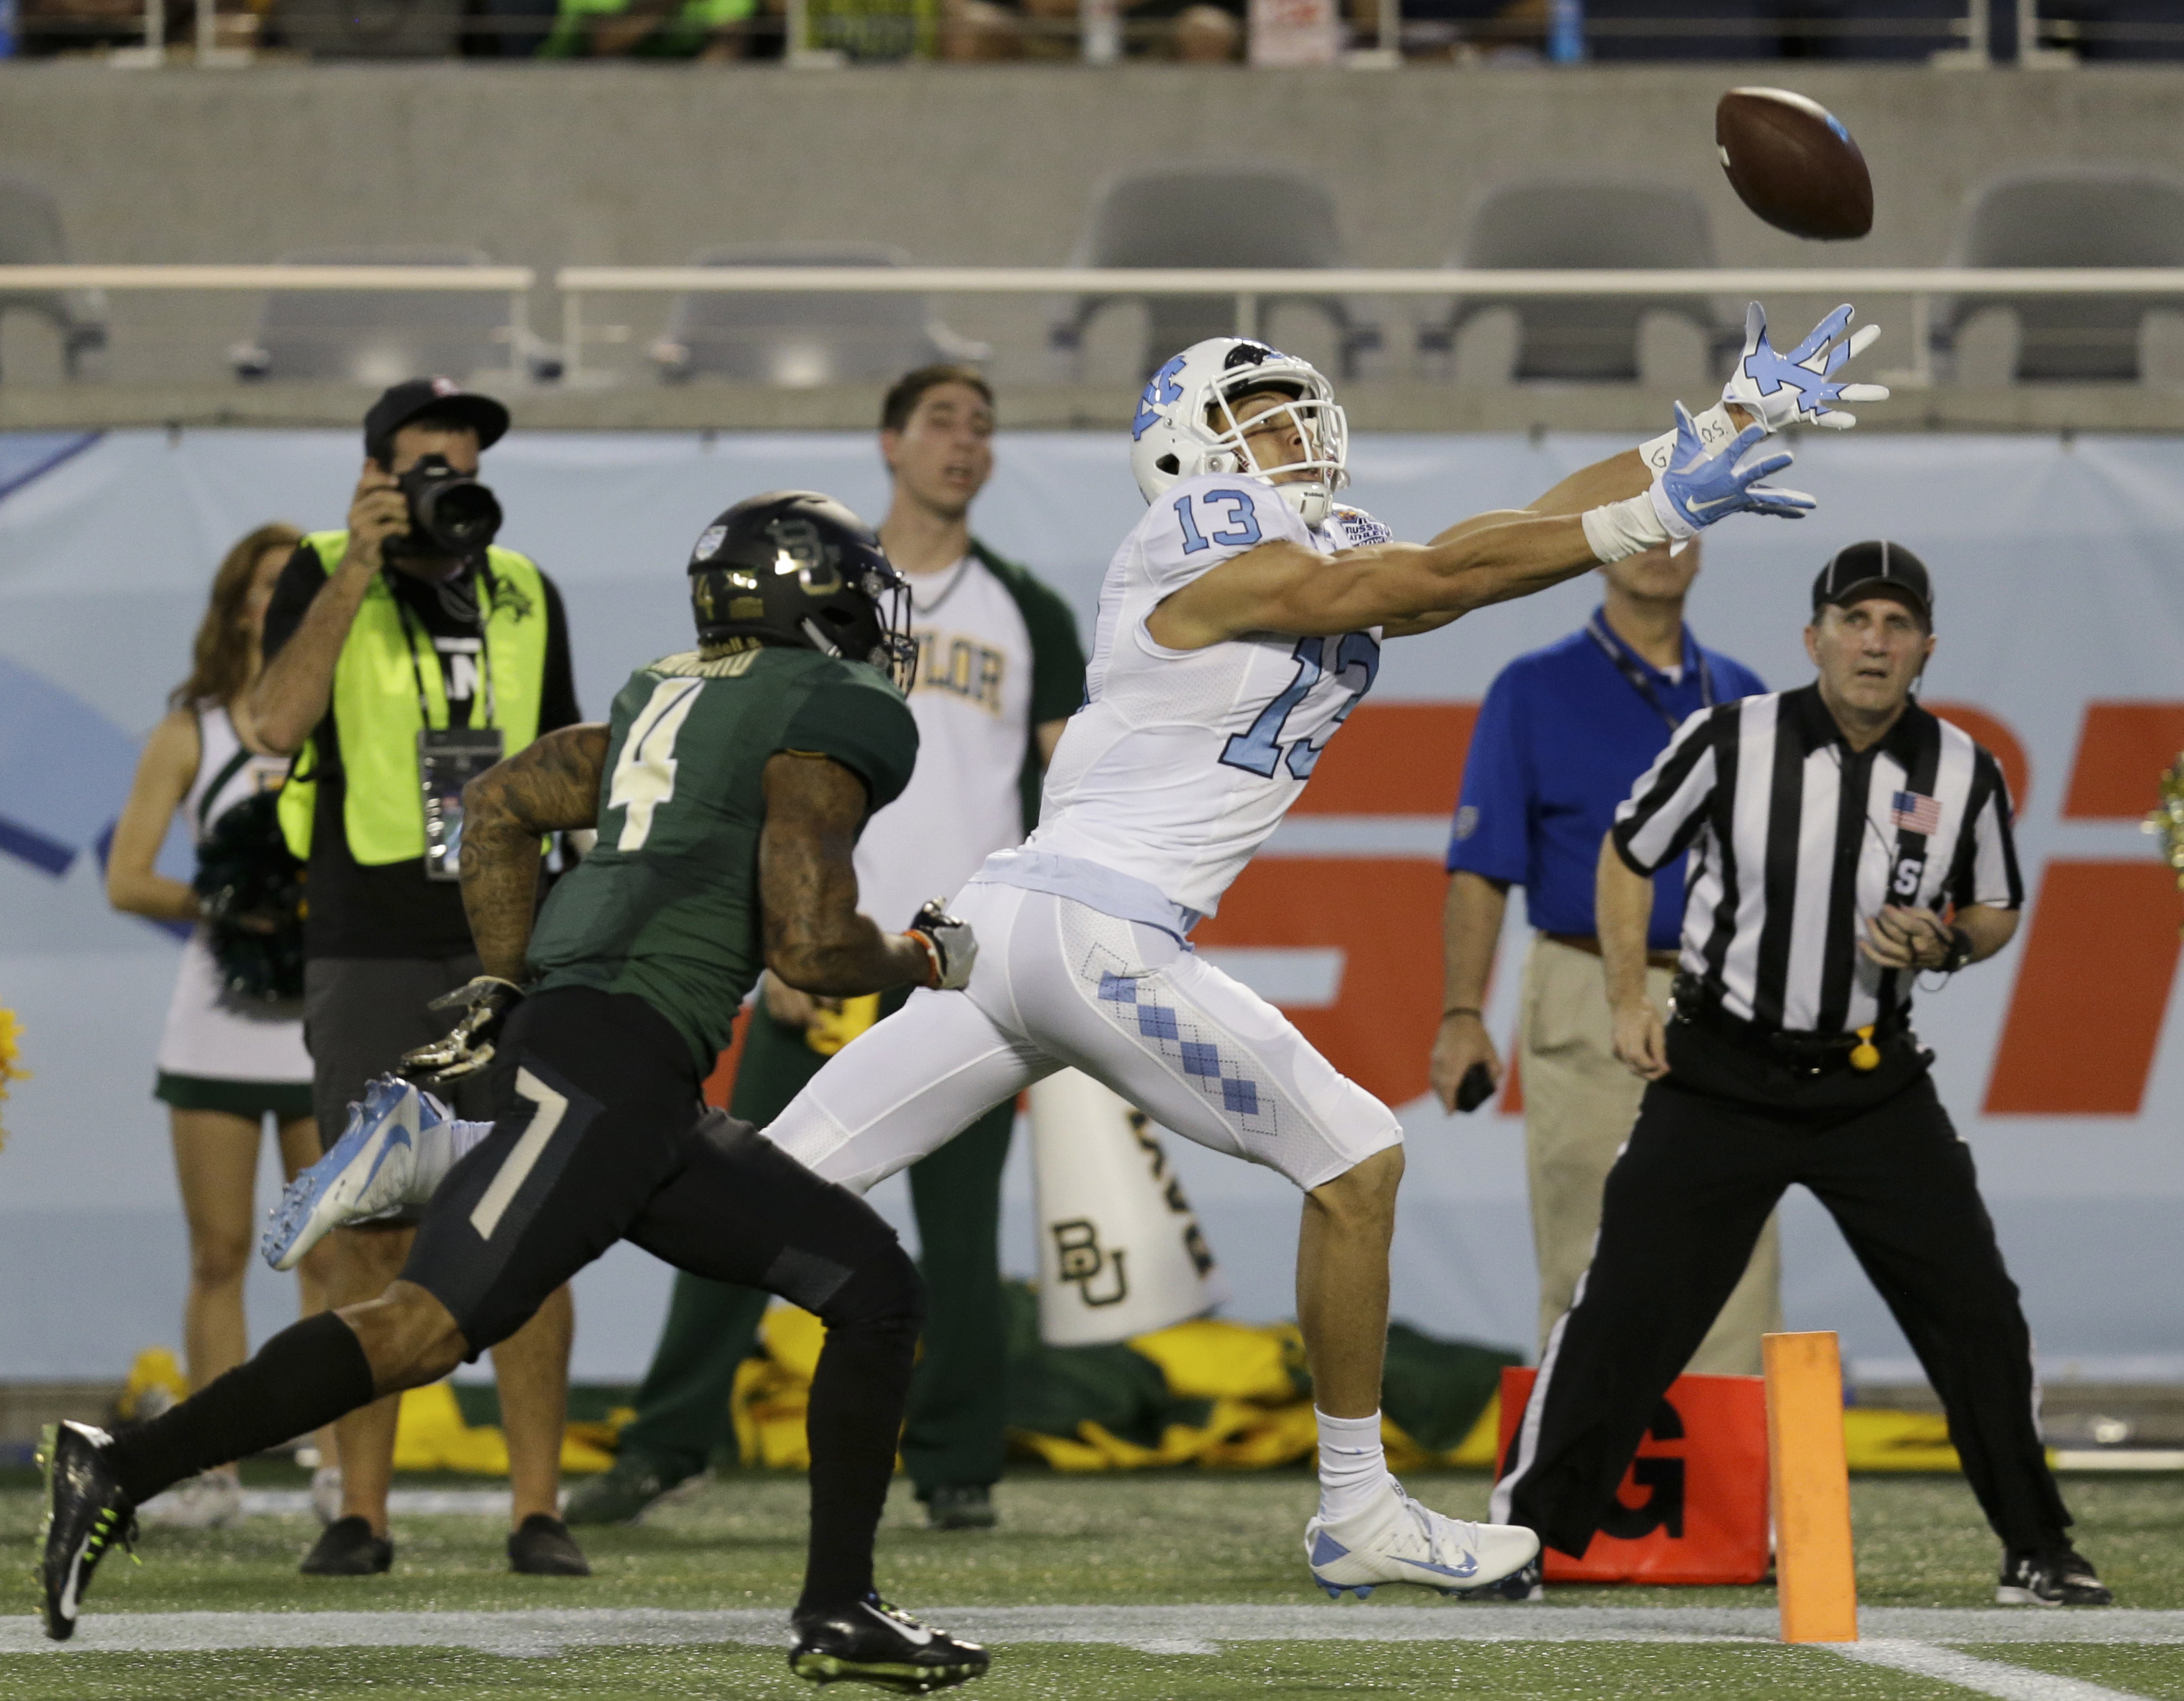 North Carolina wide receiver Mack Hollins (13) reaches but can't make a catch on an overthrown pass as he is guarded by Baylor cornerback Xavien Howard, left, during the first half of the Russell Athletic Bowl NCAA college football game, Tuesday, Dec. 29,